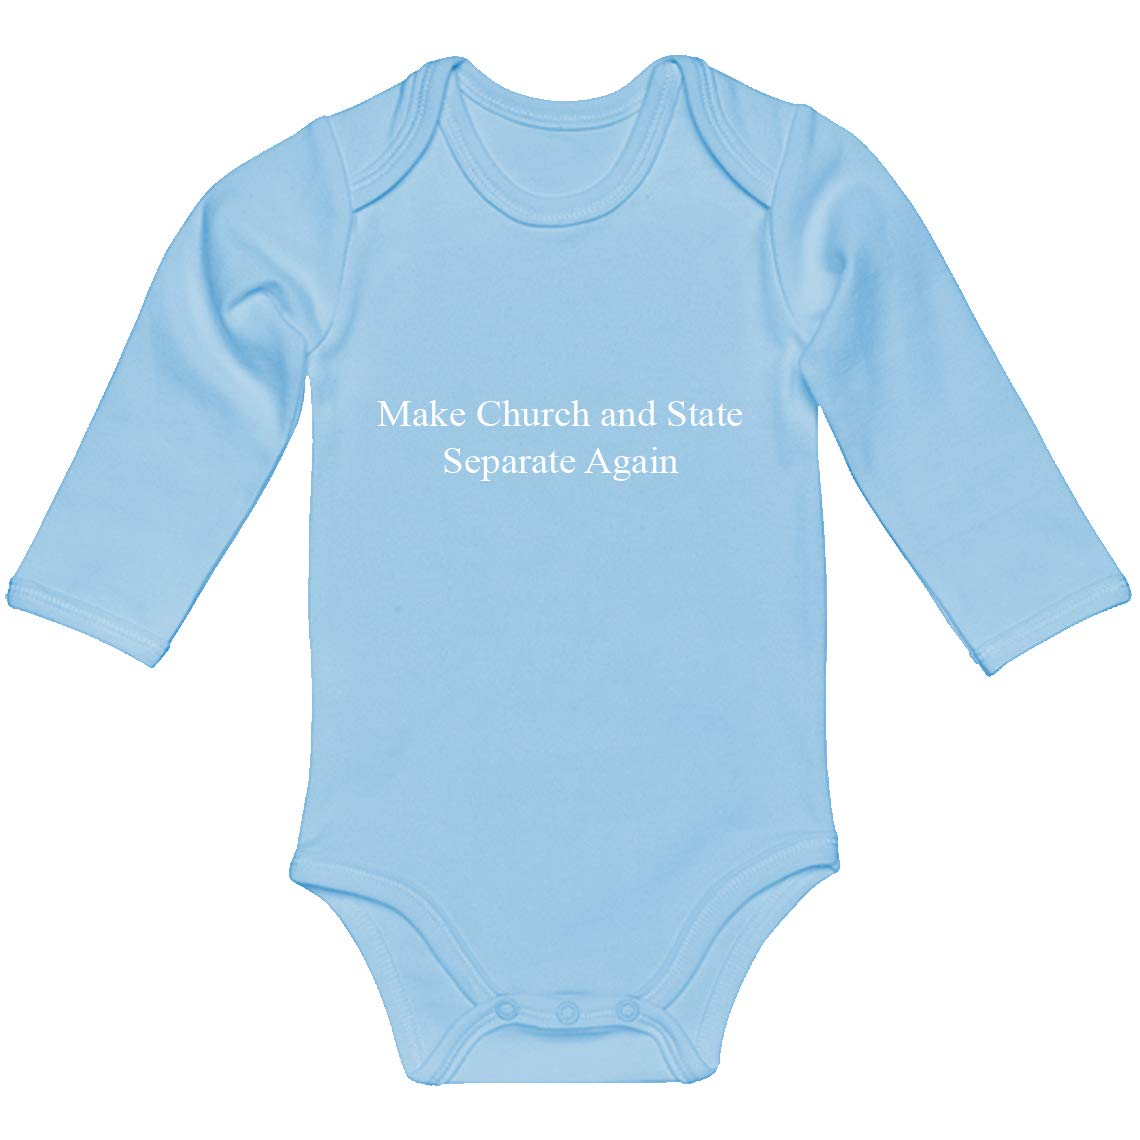 Indica Plateau Baby Onesie Make Church and State Separate Again 100/% Cotton Long Sleeve Infant Bodysuit